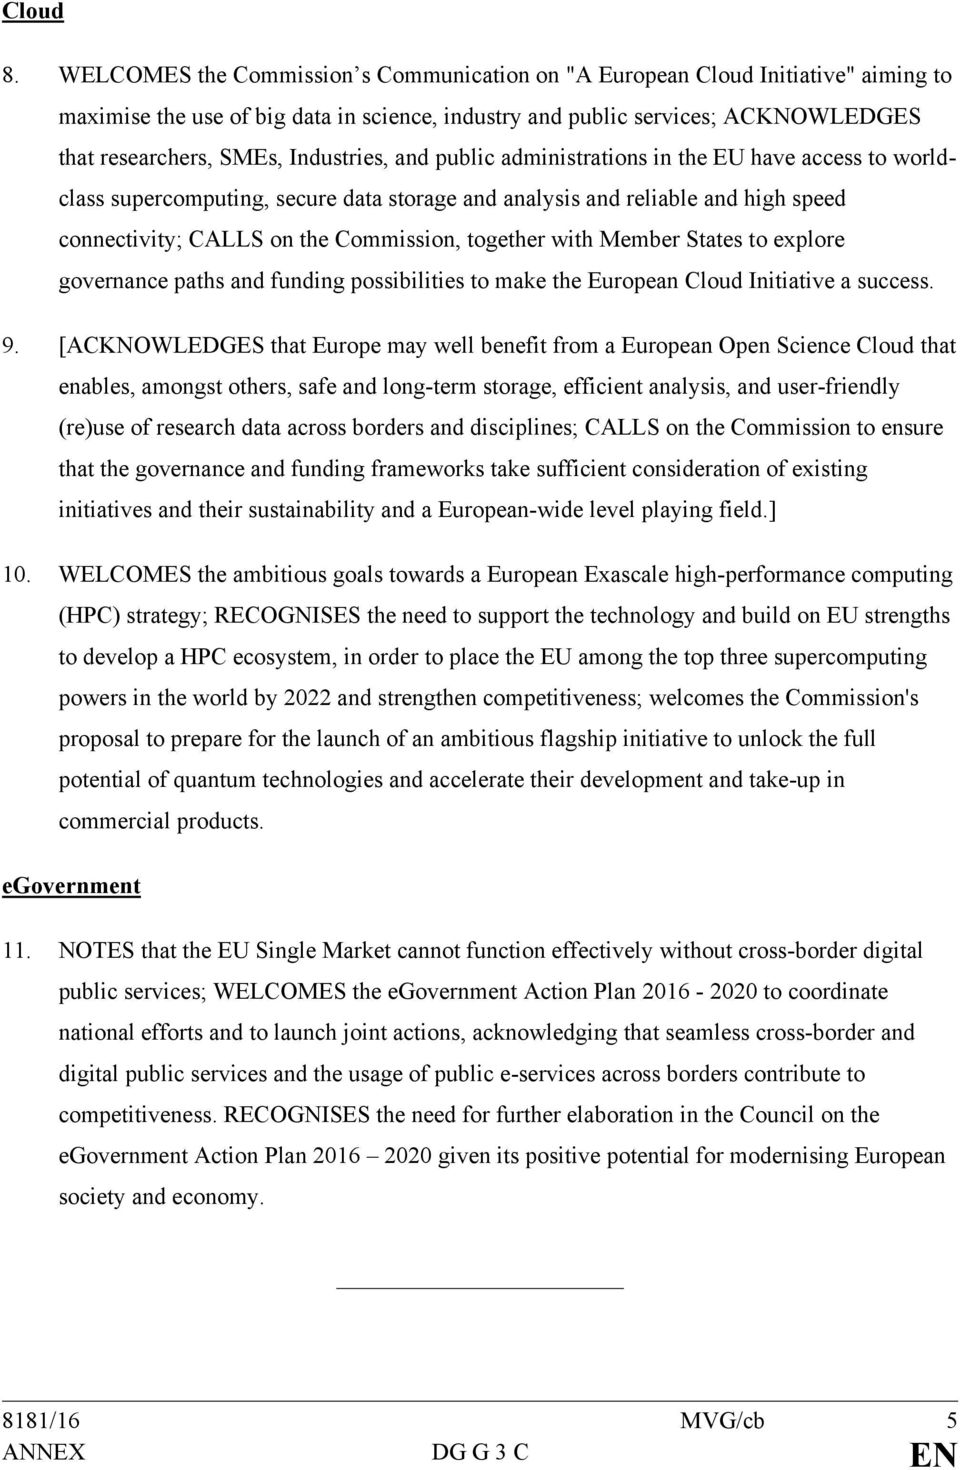 Industries, and public administrations in the EU have access to worldclass supercomputing, secure data storage and analysis and reliable and high speed connectivity; CALLS on the Commission, together